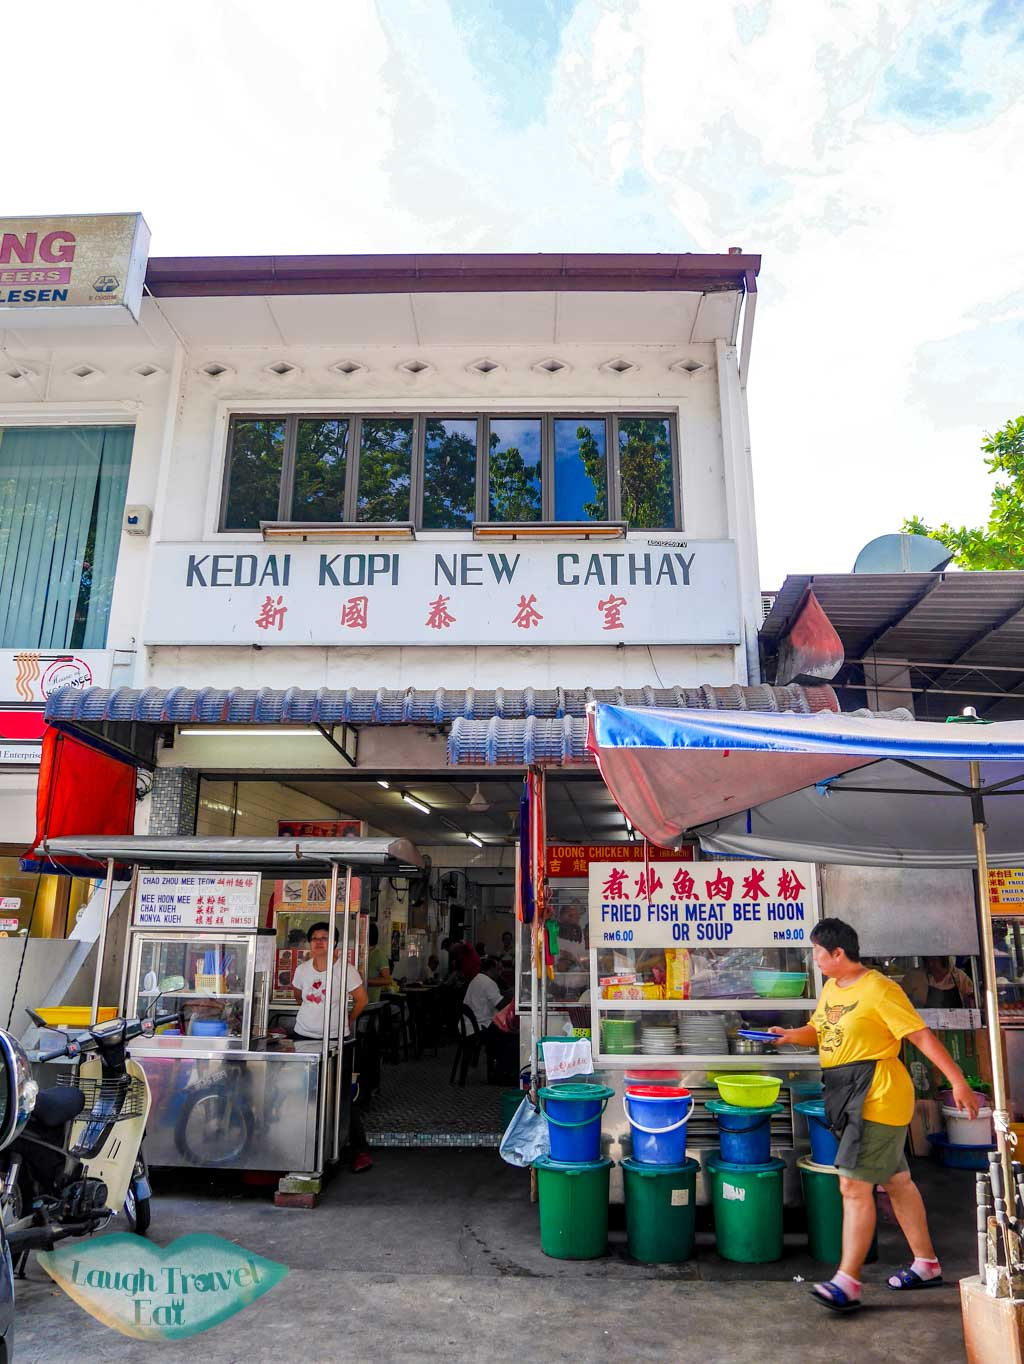 One-of-the-Hawker-center-my-family-frequented-New-Cathay-Tea-House-Penang-Malaysia-Laugh-Travel-Eat